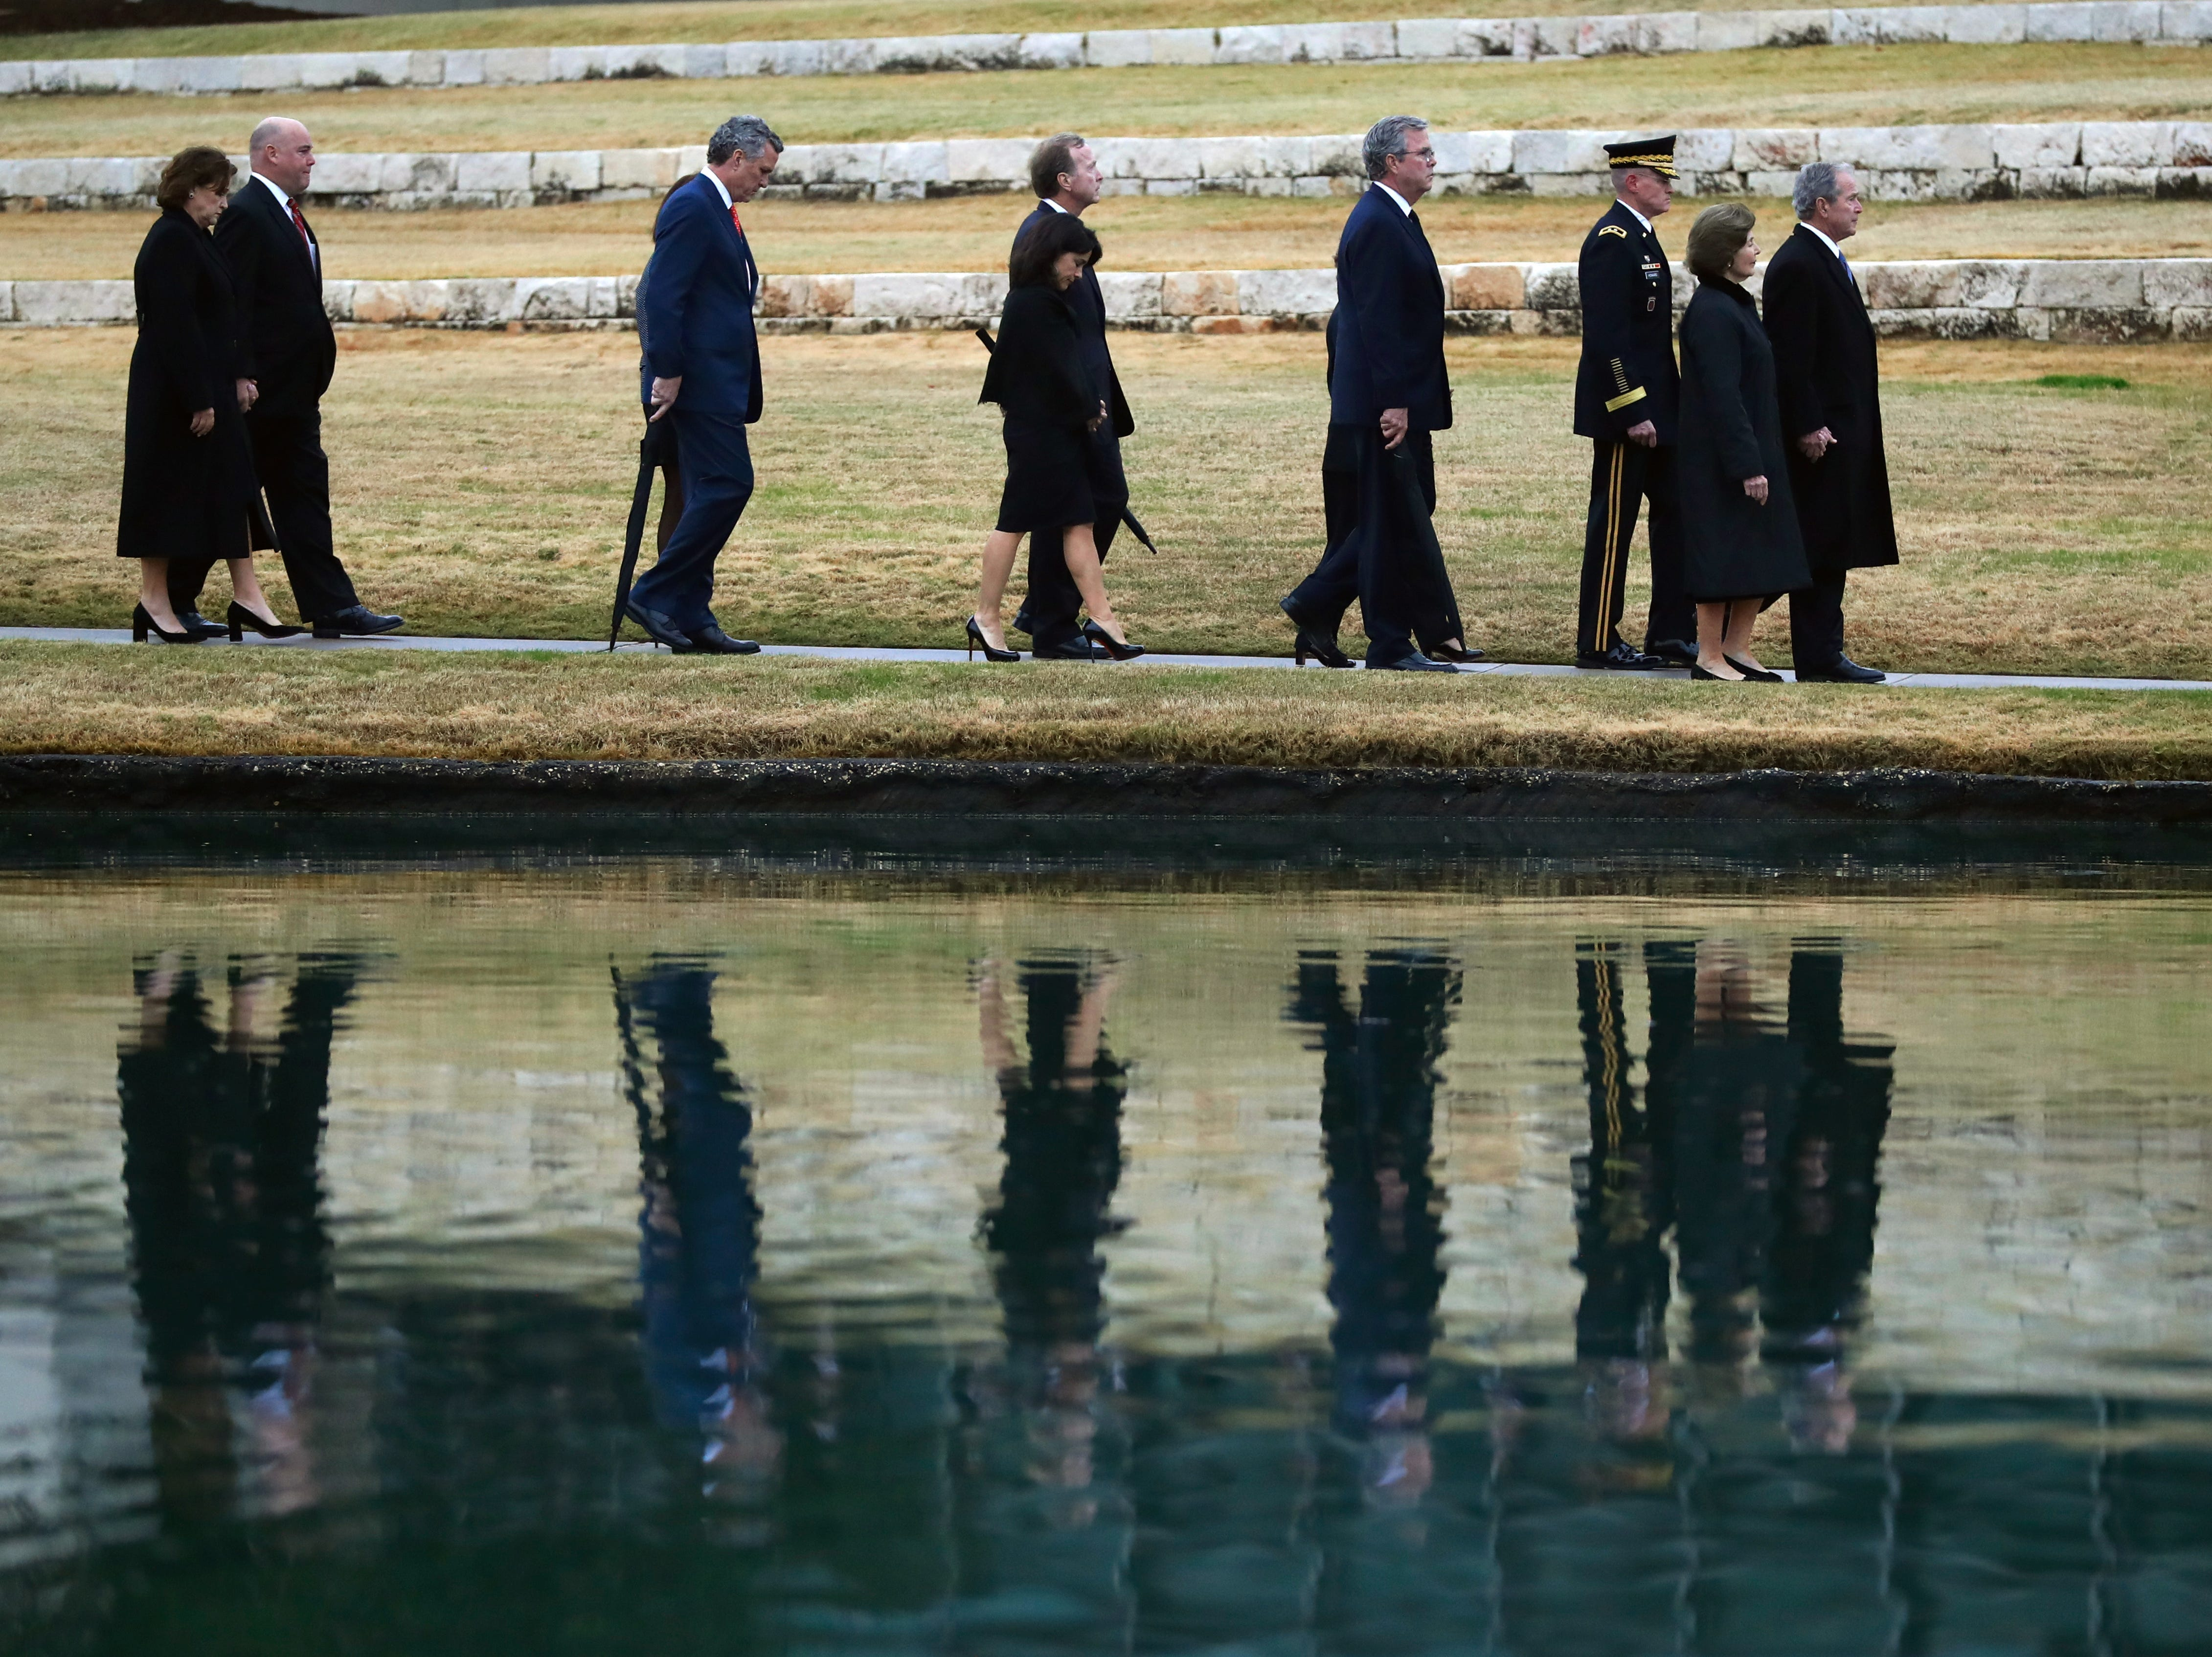 Family members follow the flag-draped casket of former President George H.W. Bush at the George H.W. Bush Presidential Library and Museum Thursday, Dec. 6, 2018, in College Station, Texas.